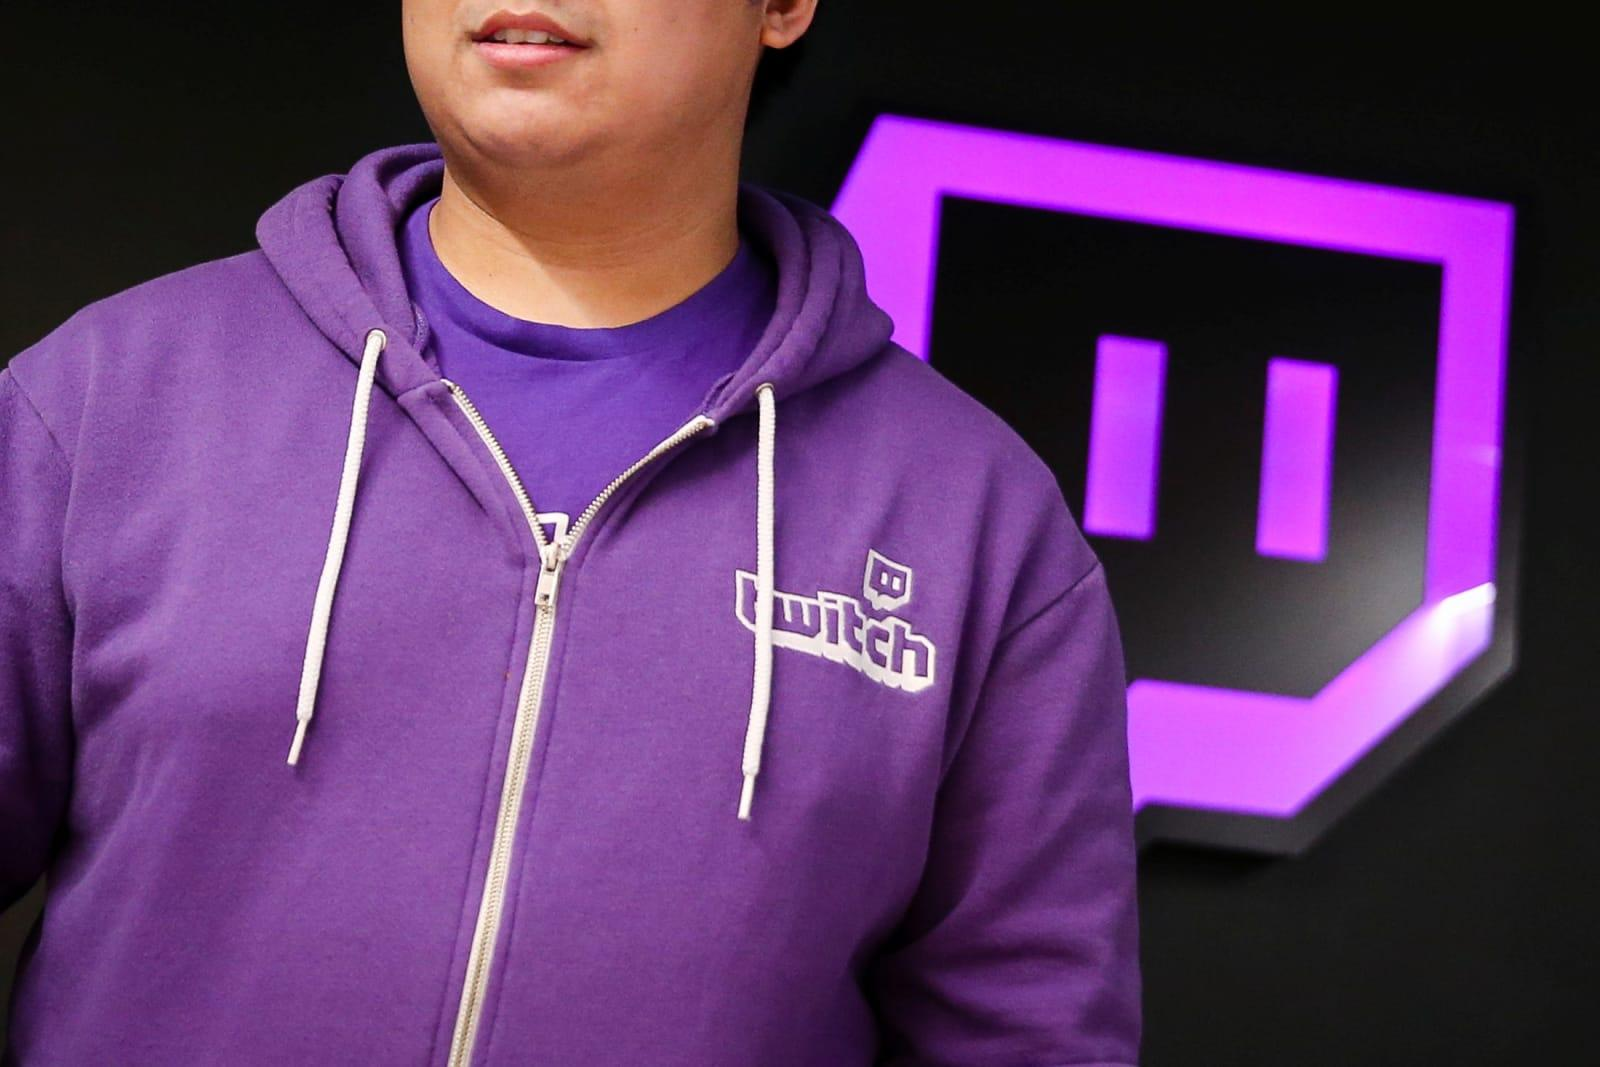 Twitch is making games viewers and streamers can play together